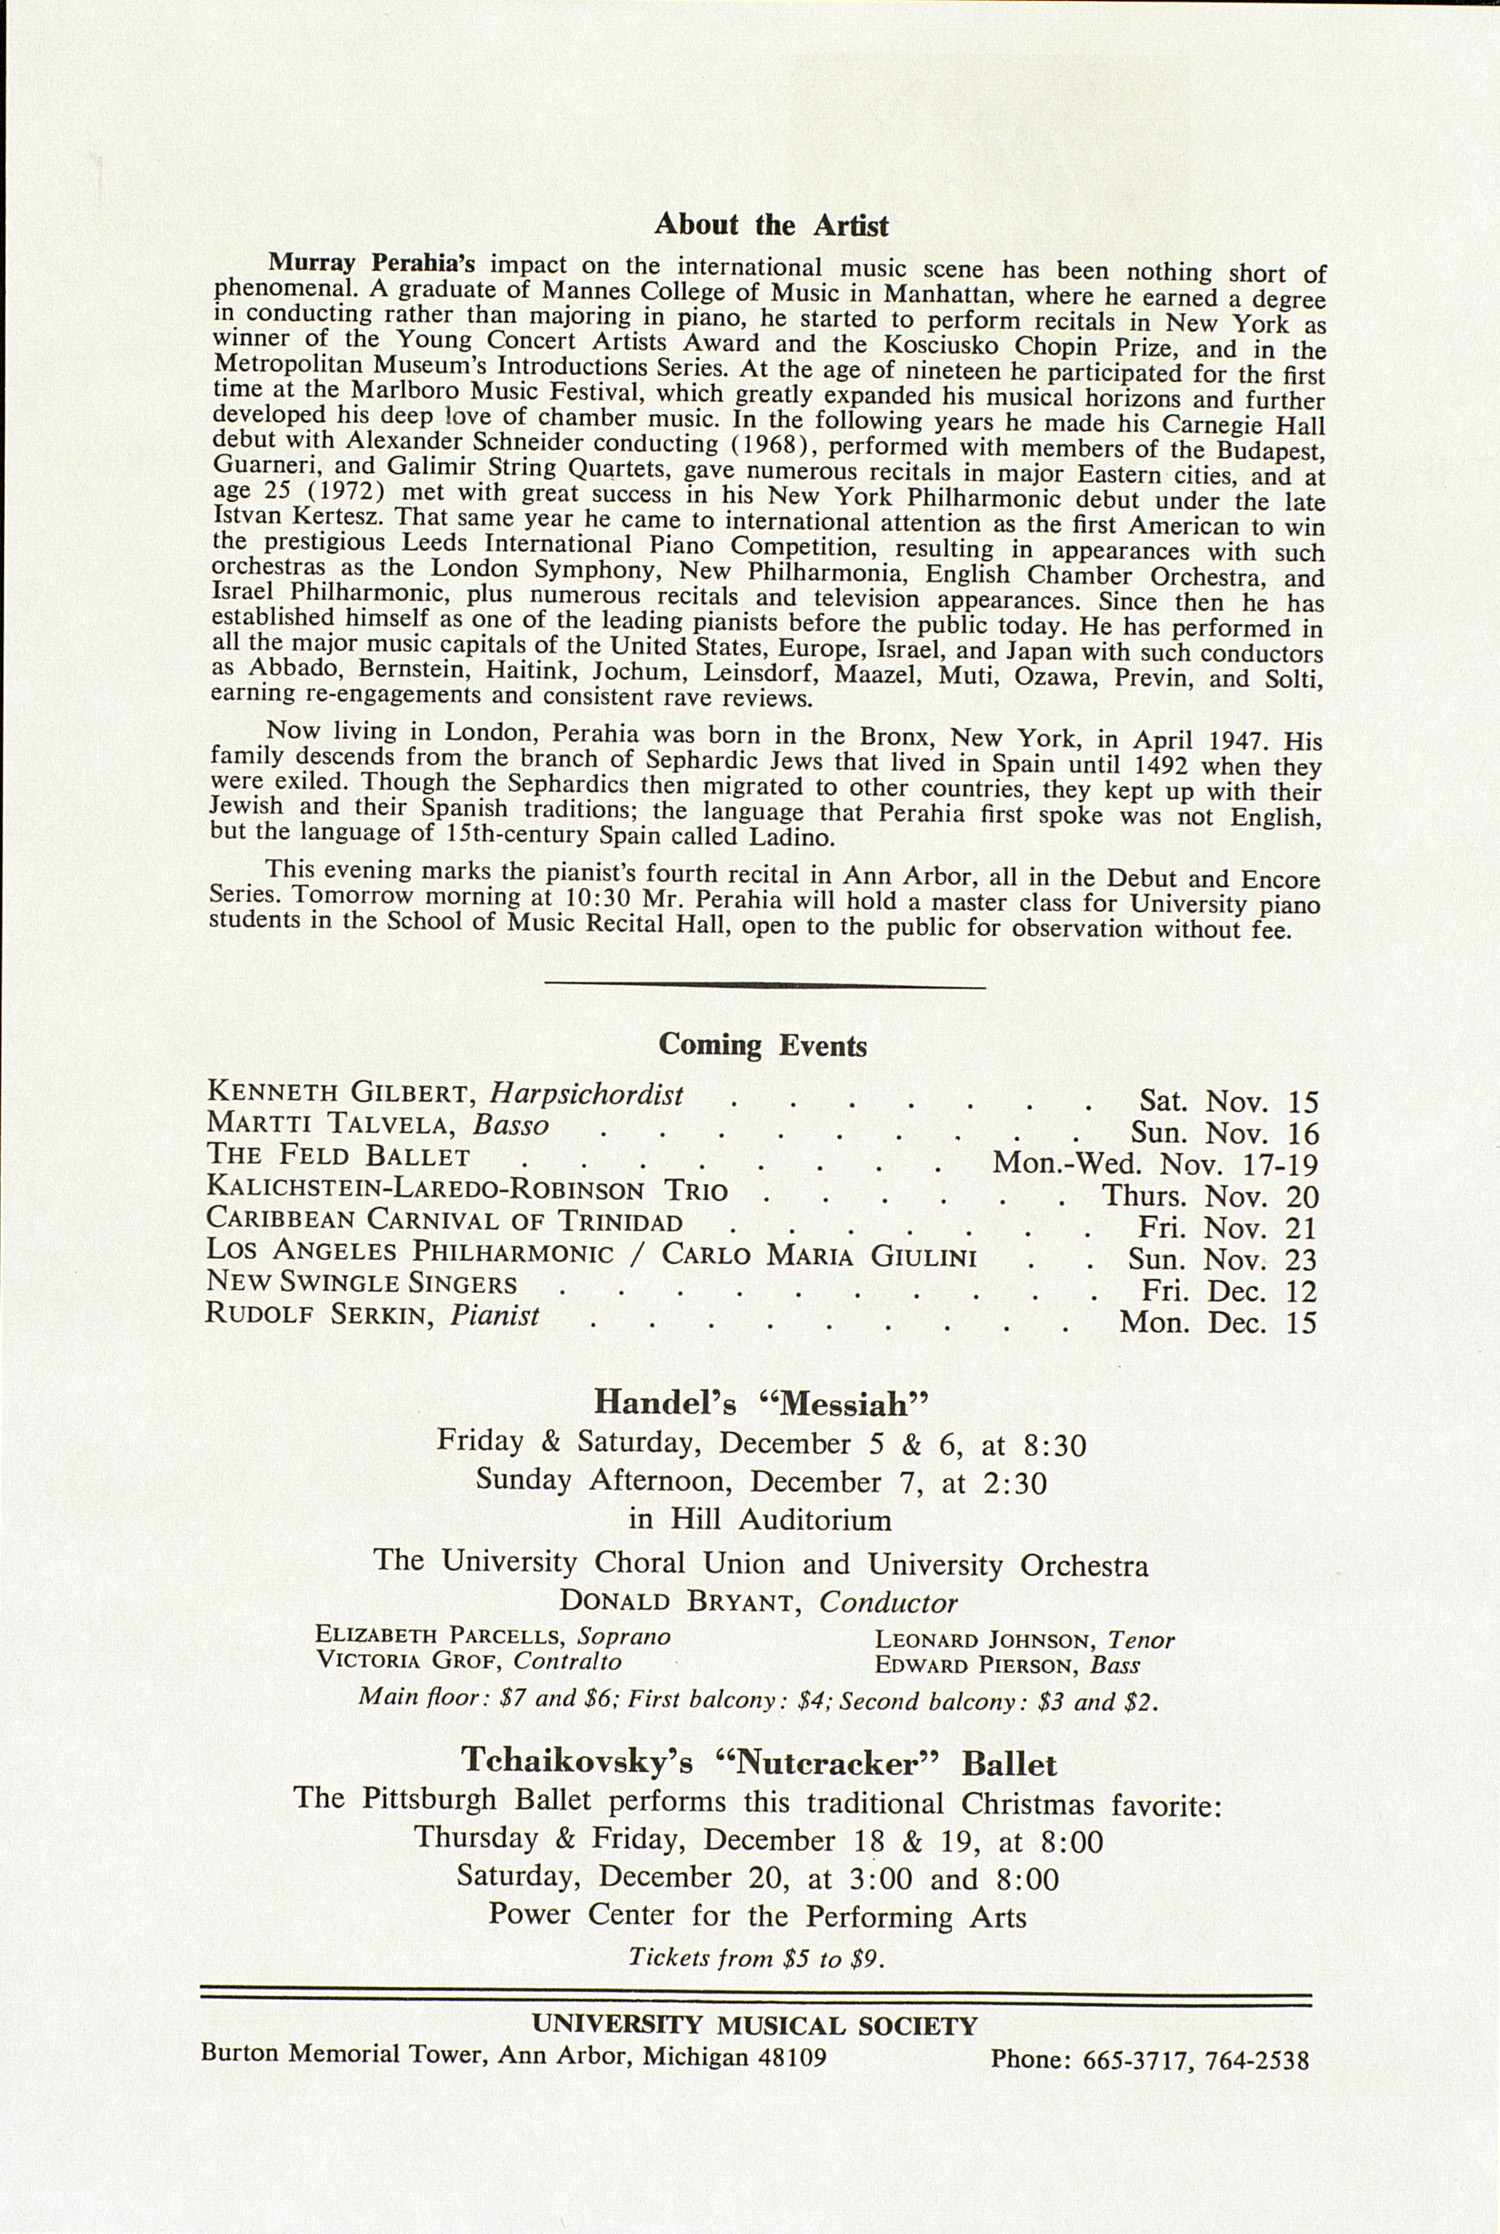 UMS Concert Program, November 13, 1980: International Presentations Of Music & Dance --  image